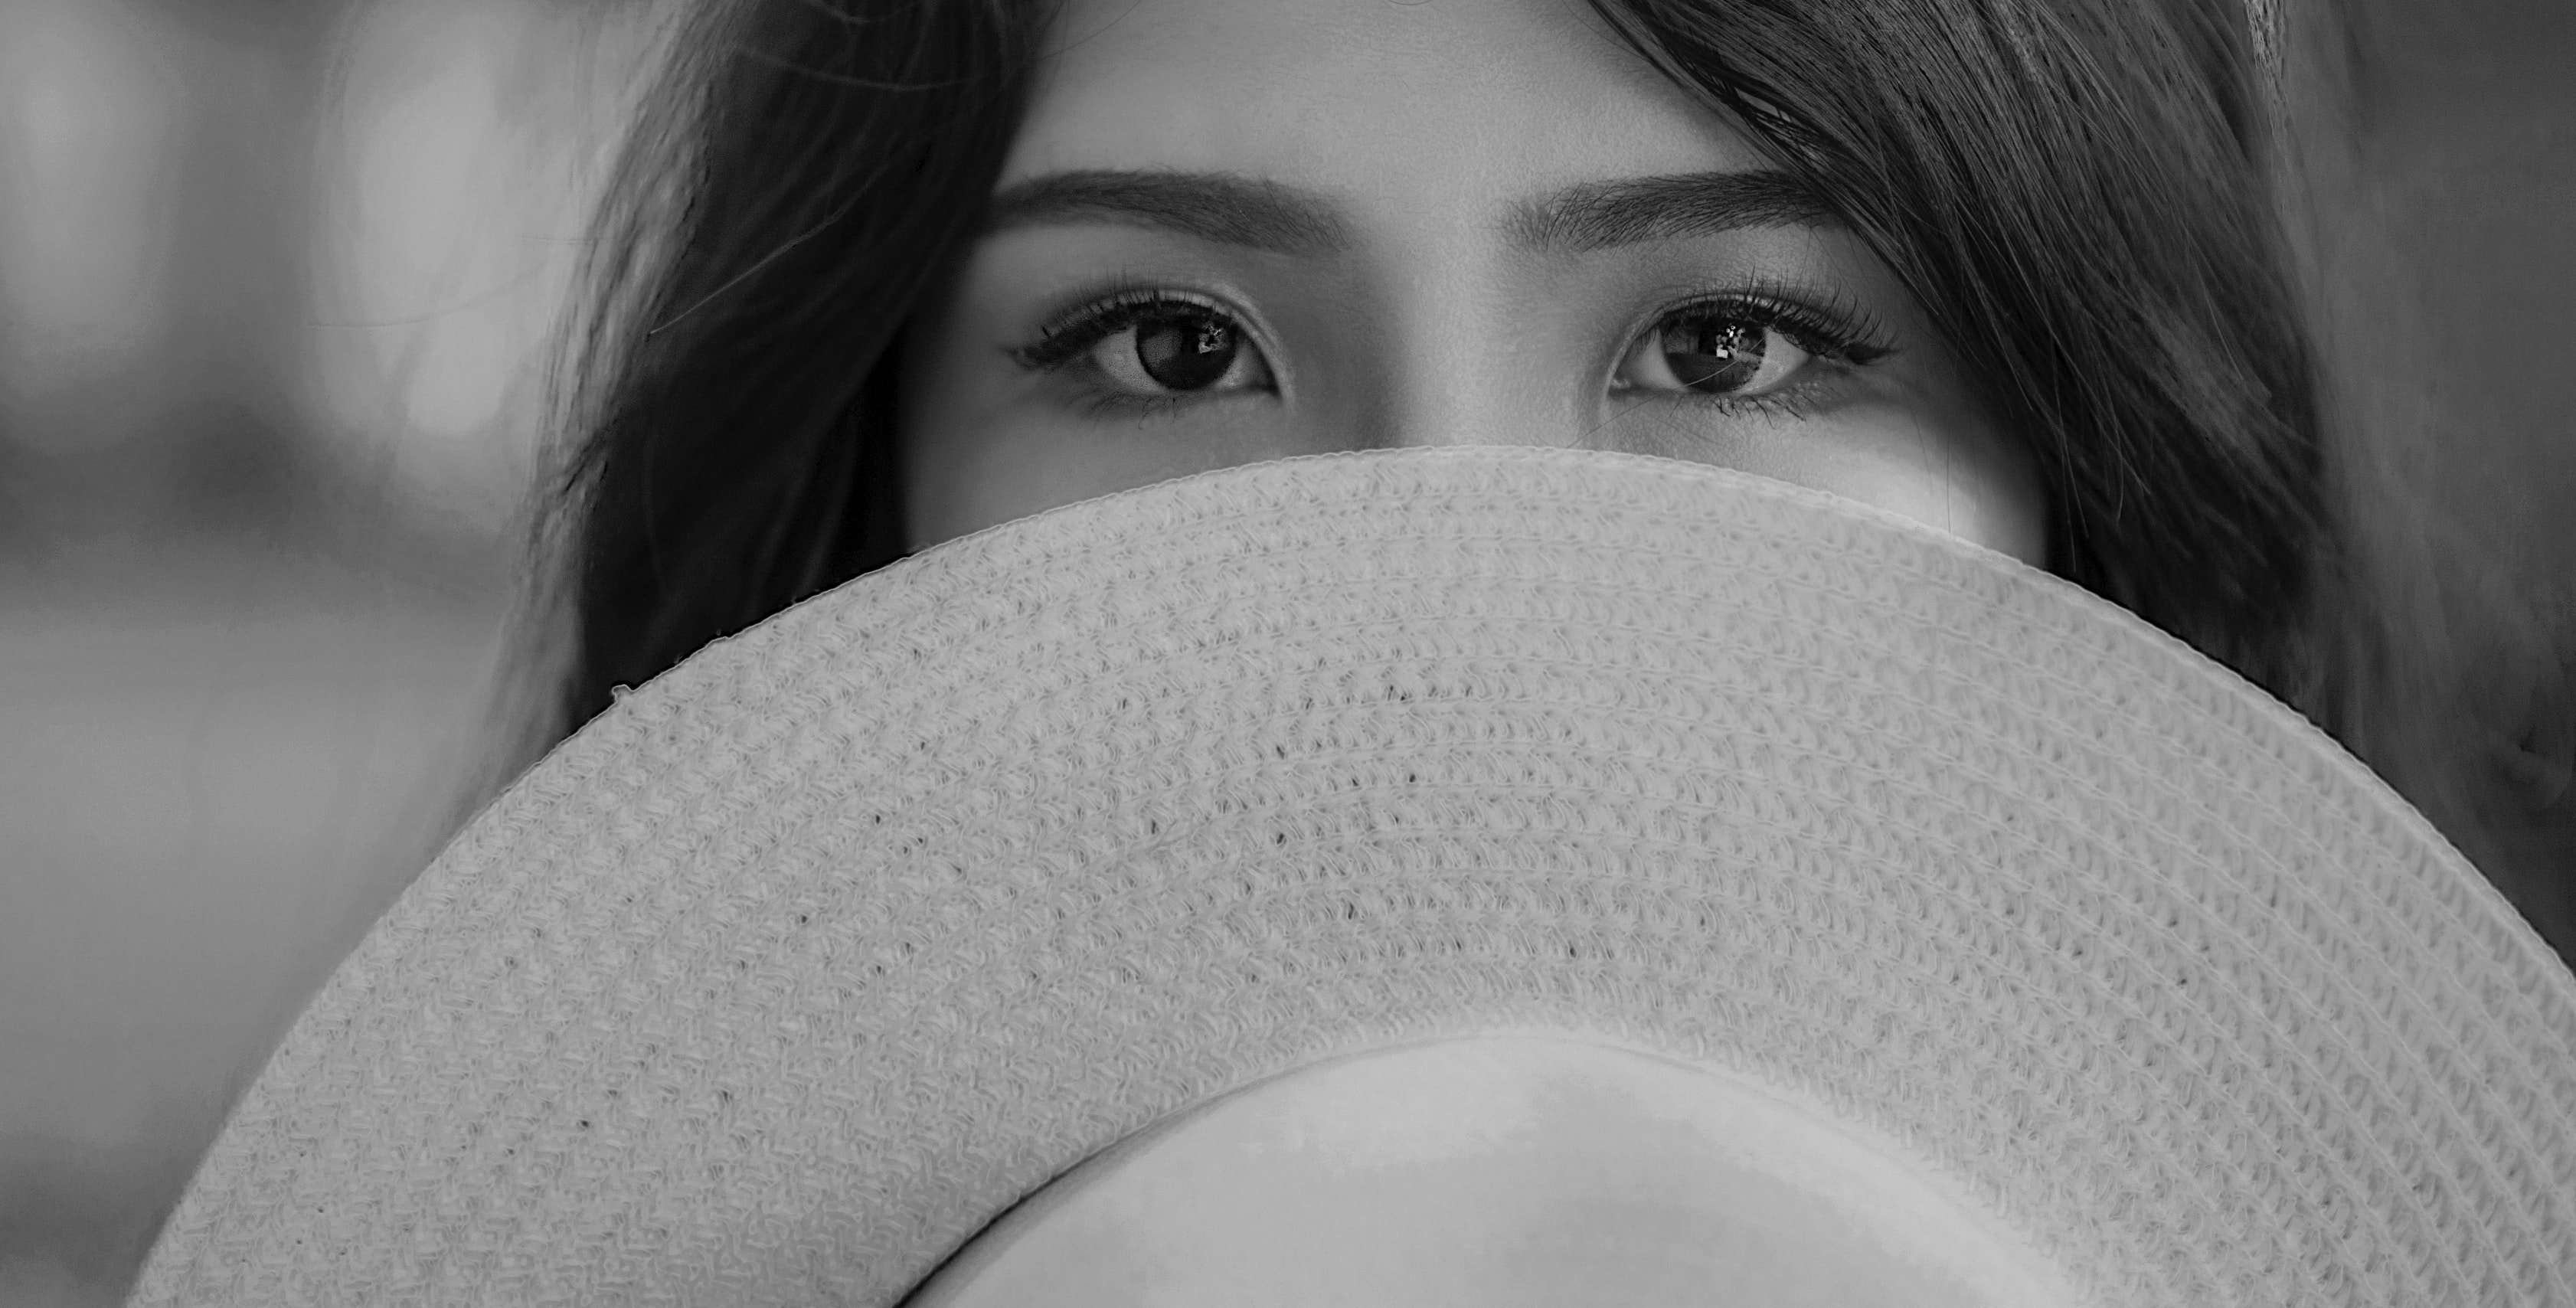 Grayscale Photography of Woman Covering Her Face With Sun Hat, Black-and-white, Blur, Close-up, Eyes, HQ Photo